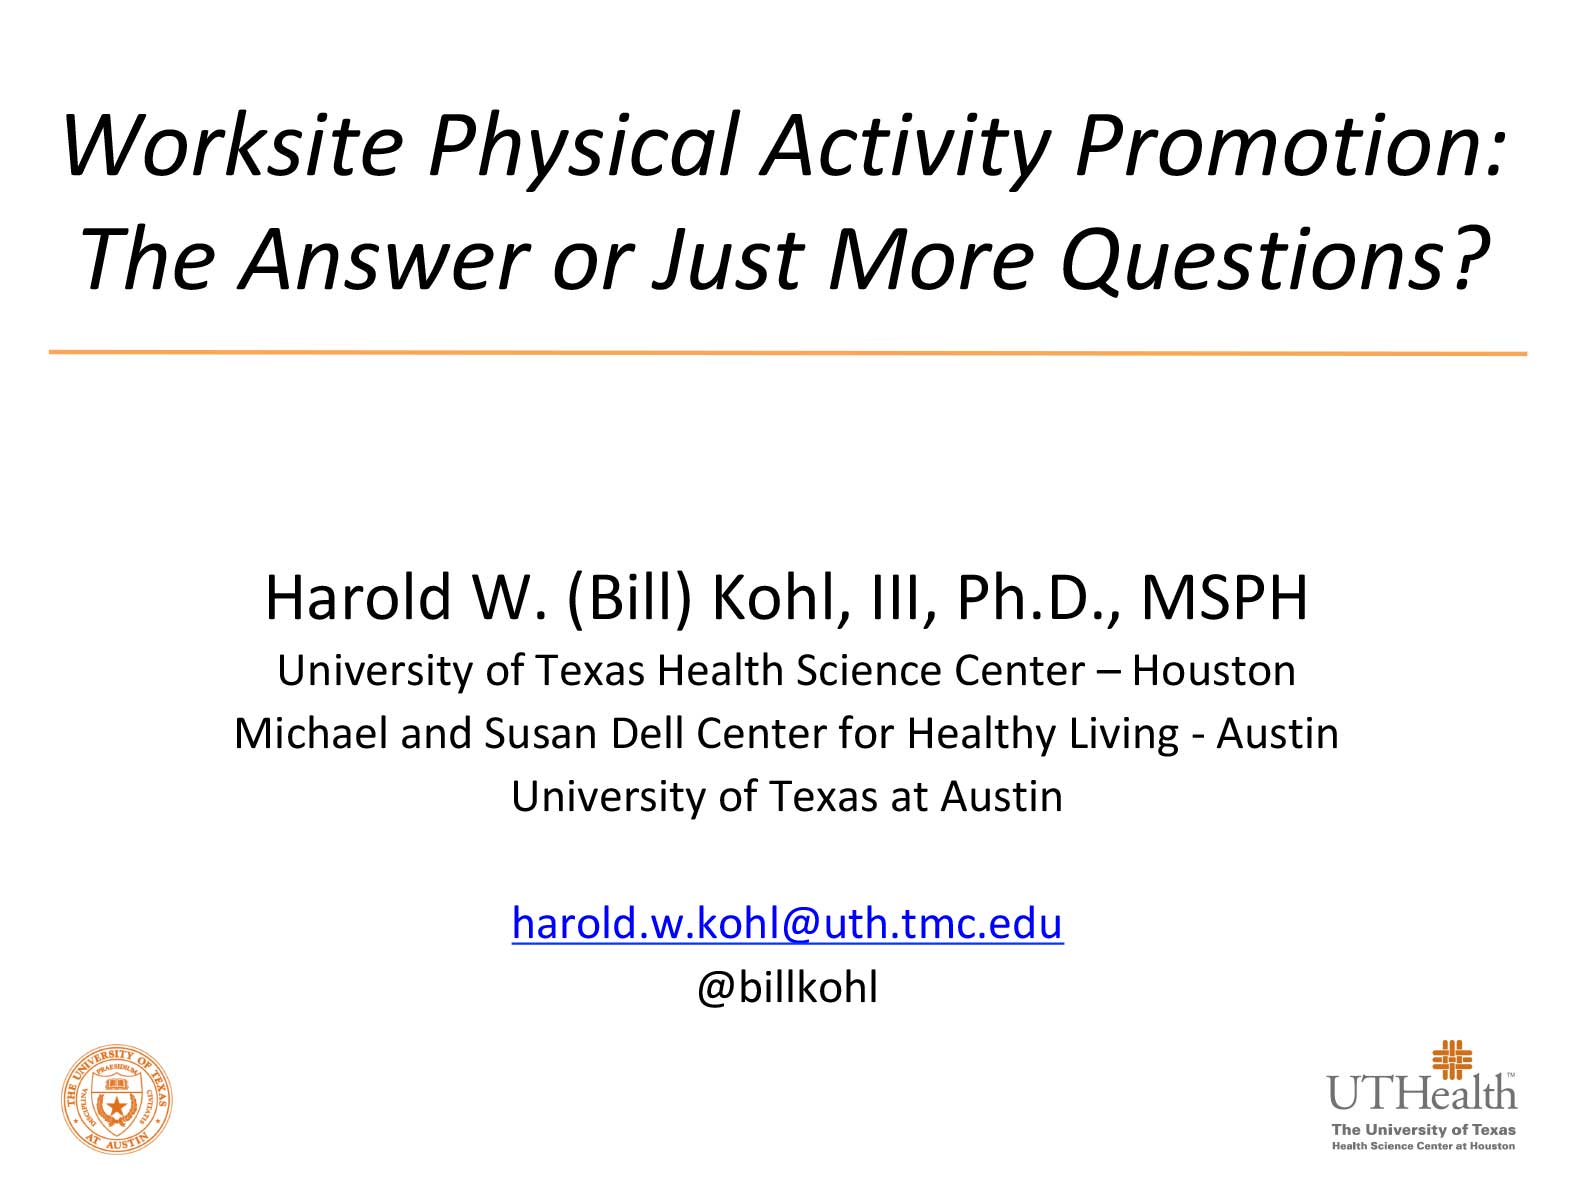 Worksite Physical Activity Promotion: The Answer or Just More Questions?